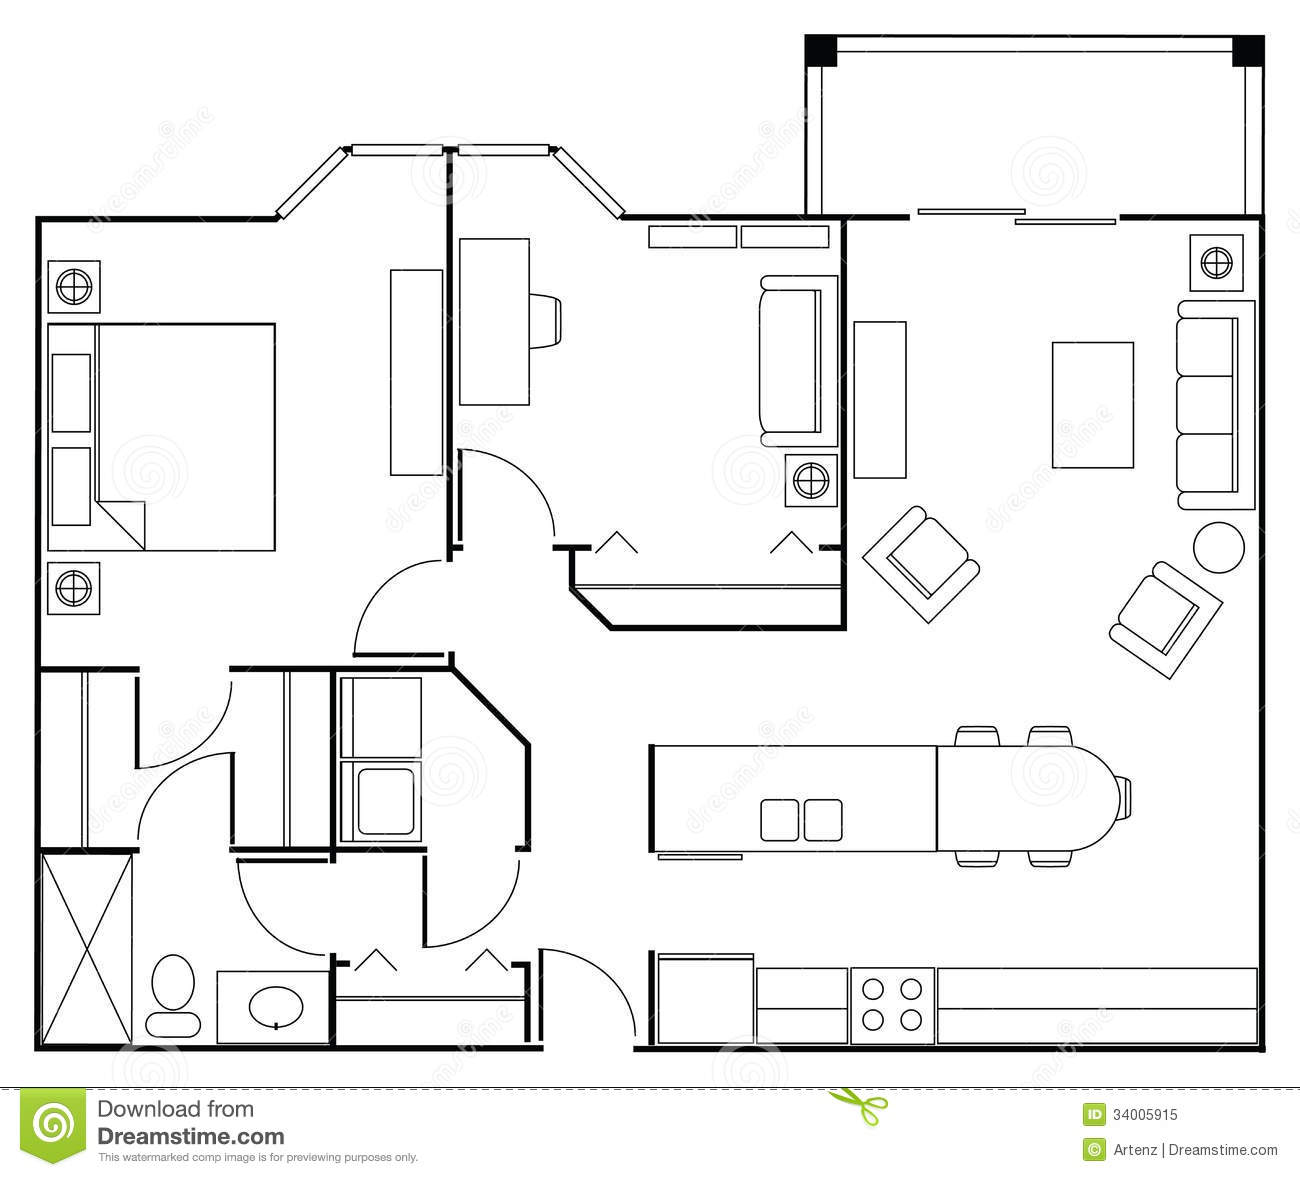 Floor plan apartment stock image image of nrenovation for Apartment stock plans